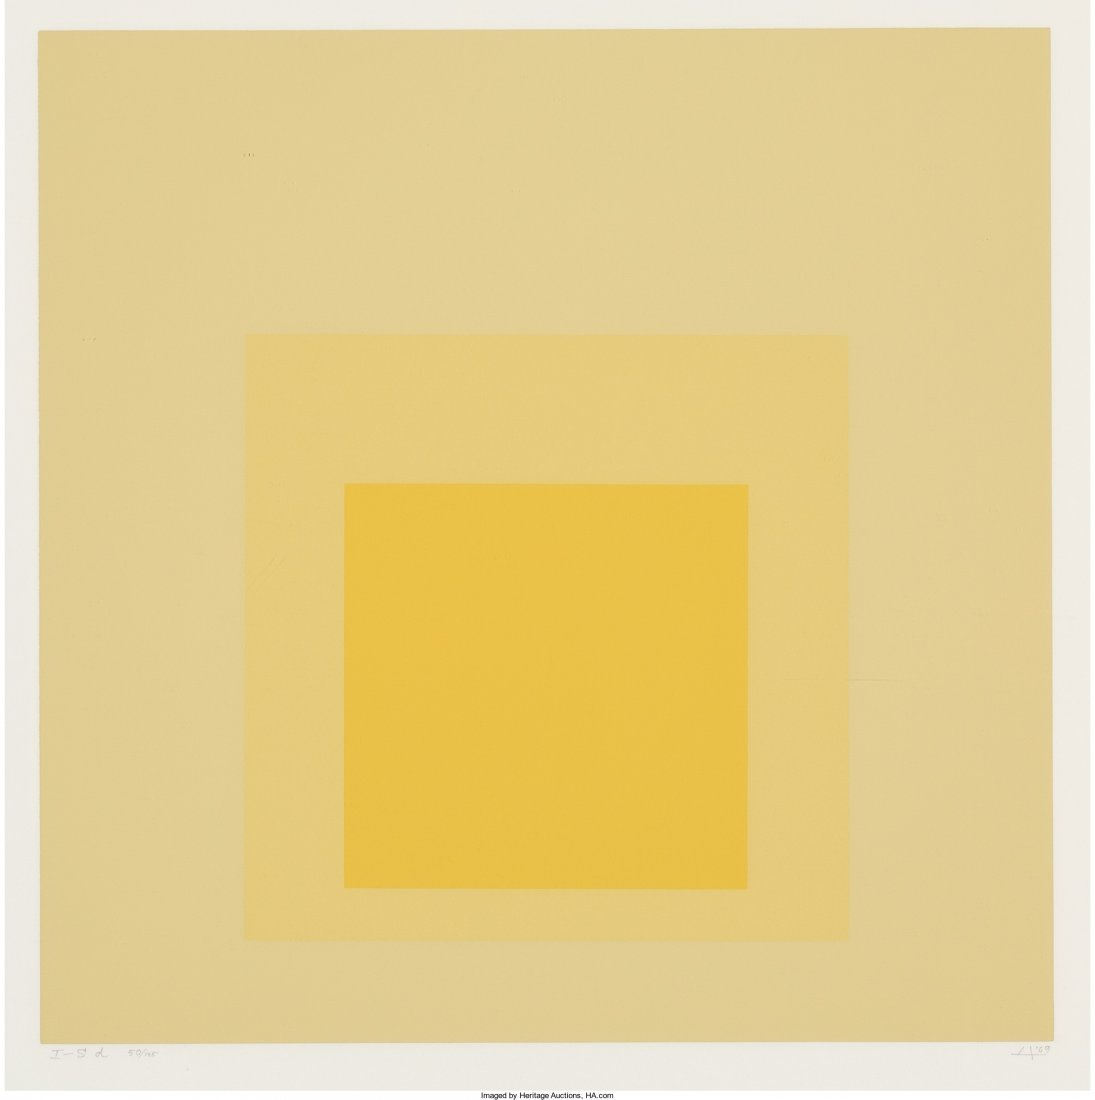 65001: Josef Albers (1888-1976) I-S d, from Homage to t